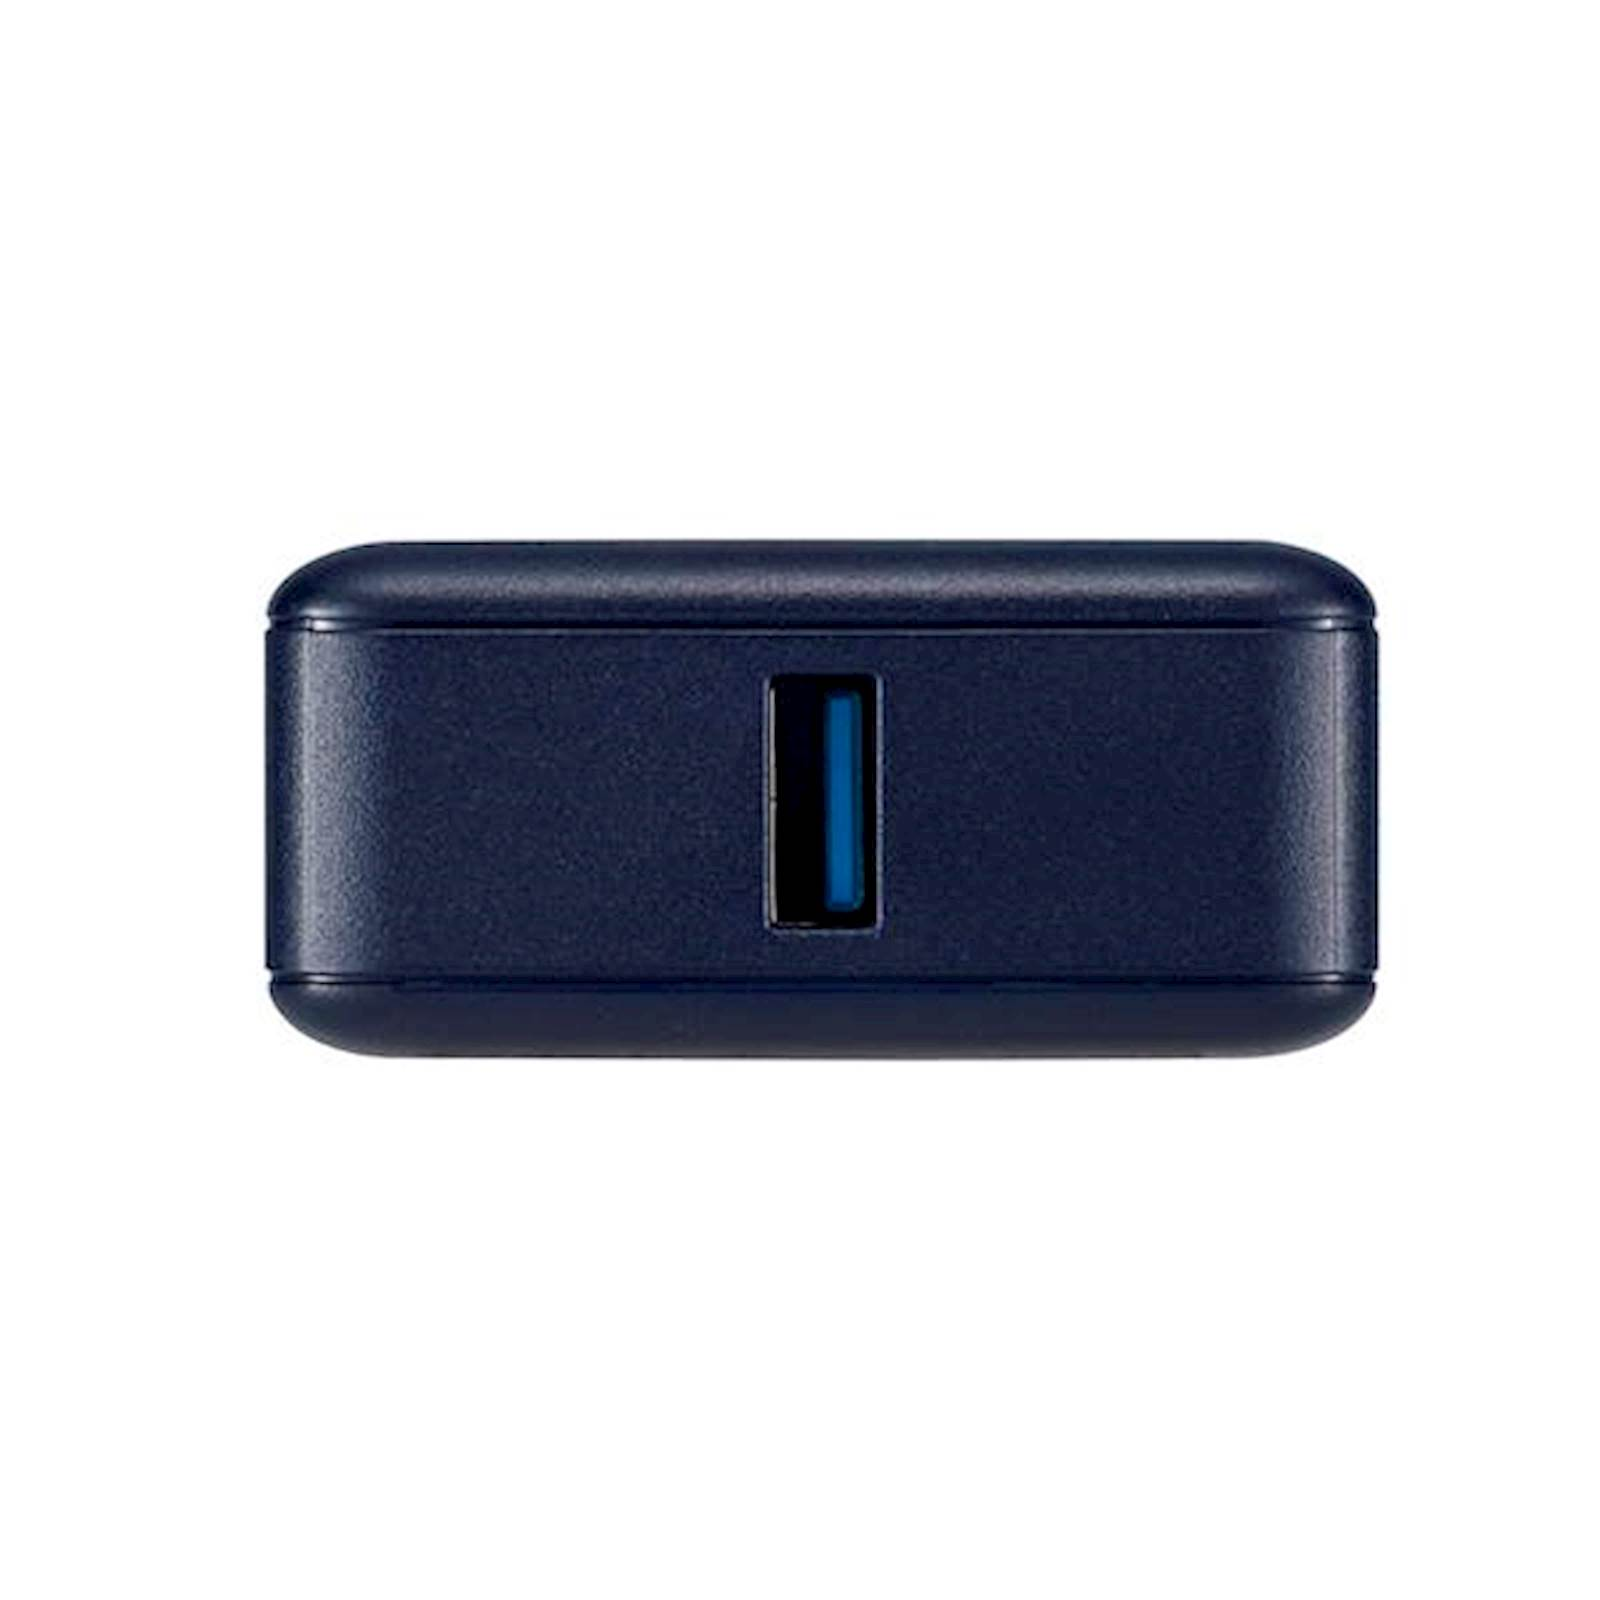 ASUS Powerbank ZenPower 1000 PD, USB-C PD in USB-A Fast Charging, 90AC0430-BBT005